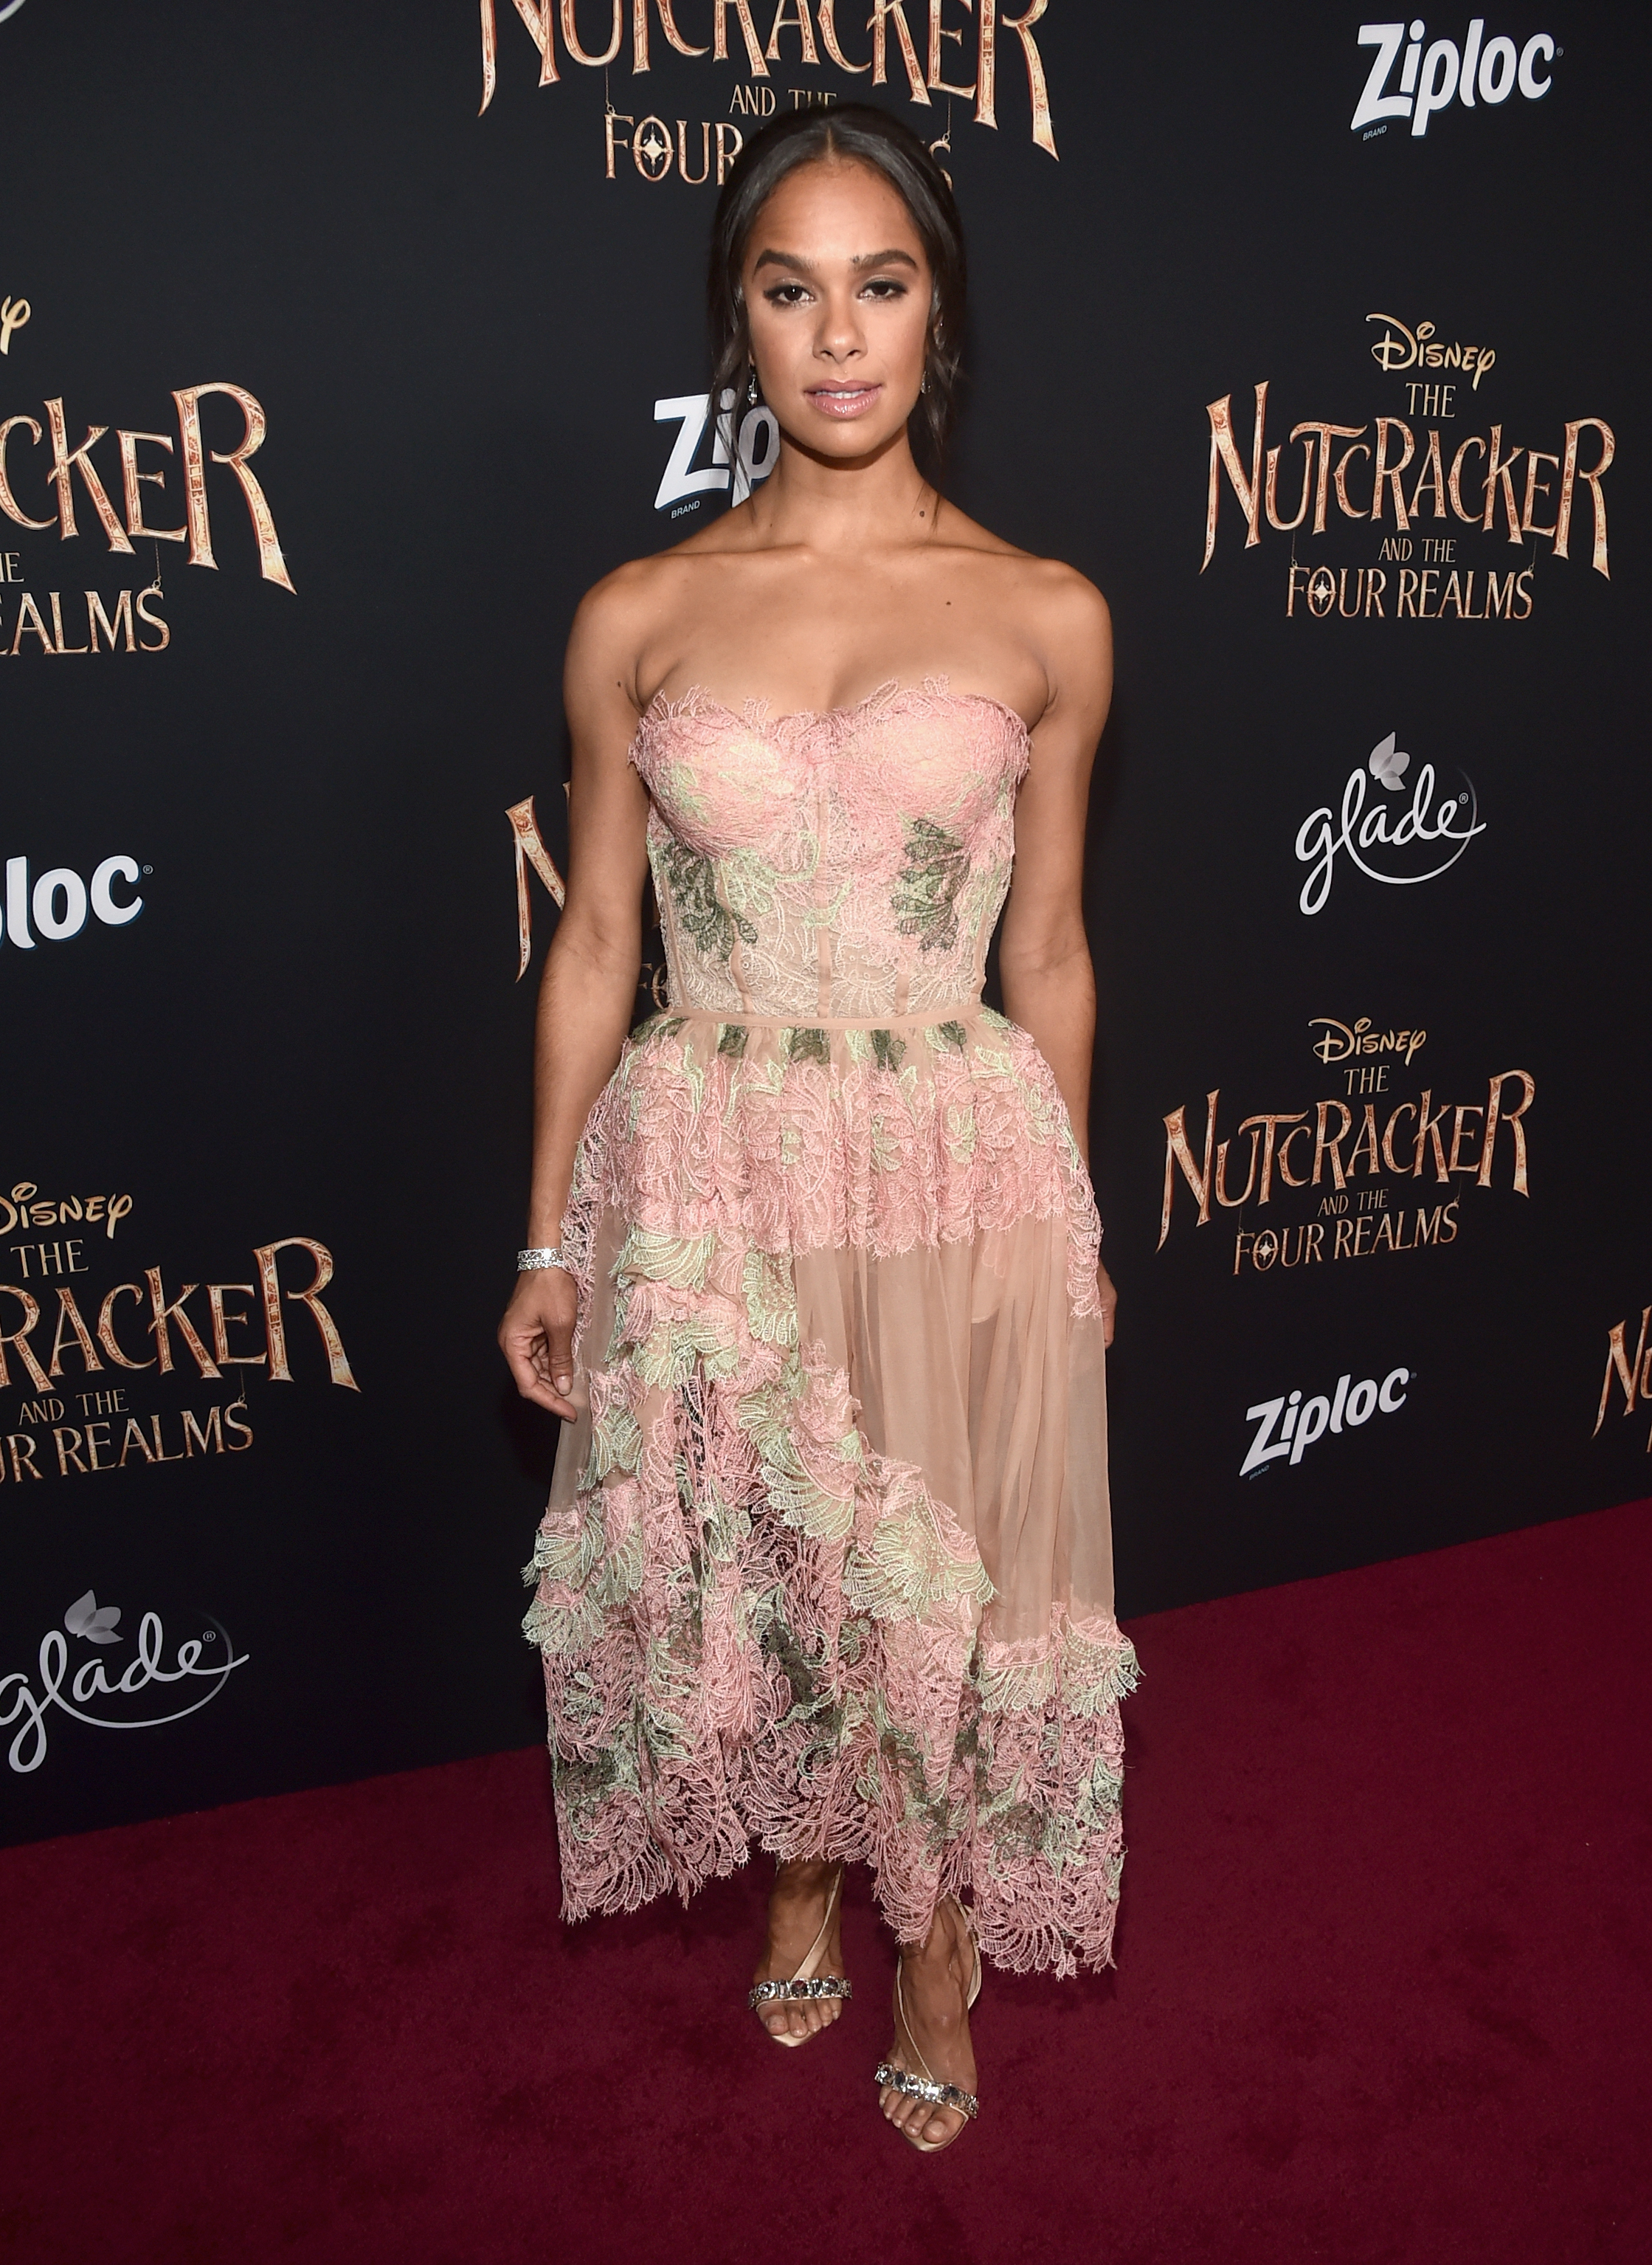 Wardrobe Breakdown: Misty Copeland At The Disney The Nutcracker And The Four Realms World Premiere